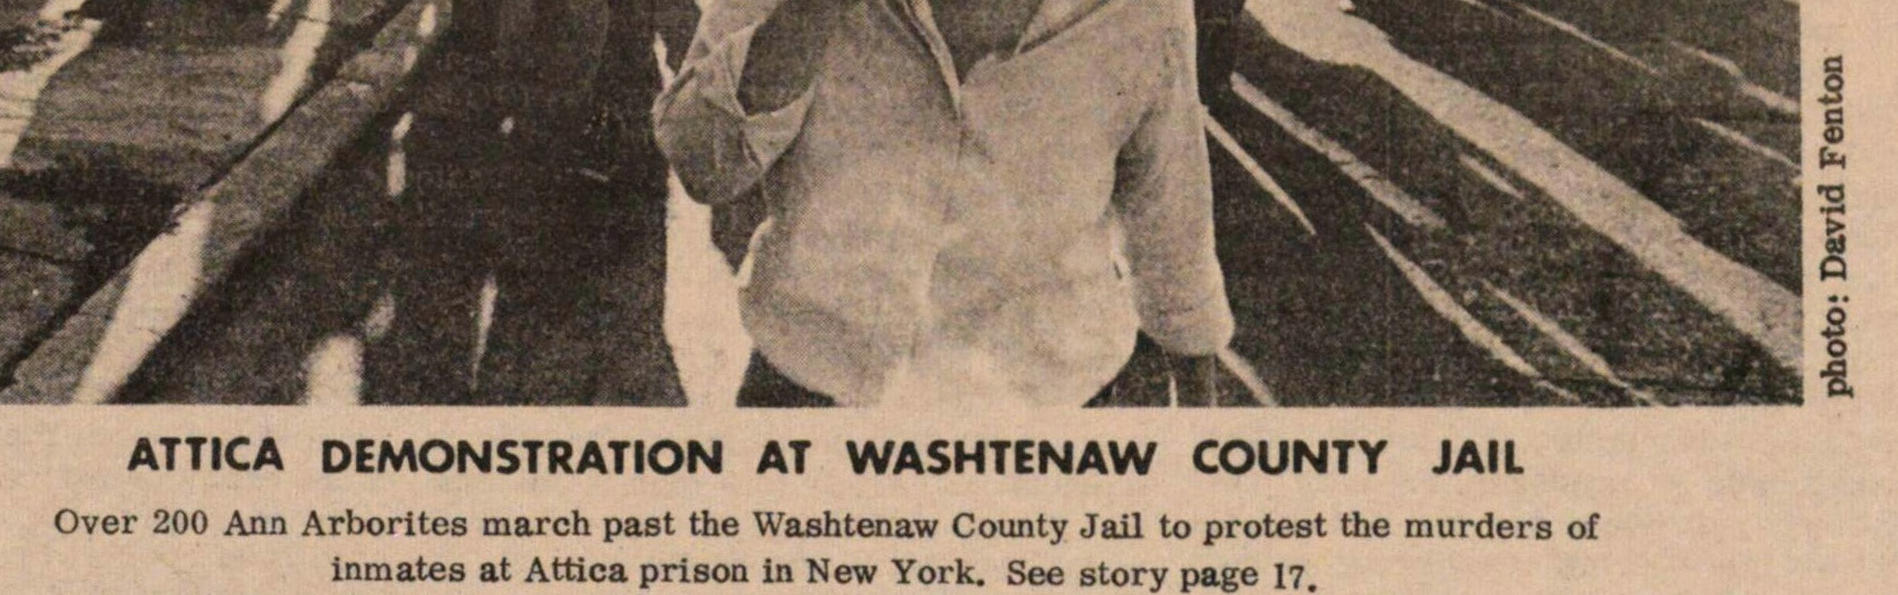 Attica Demonstration At Washtenaw County Jail image